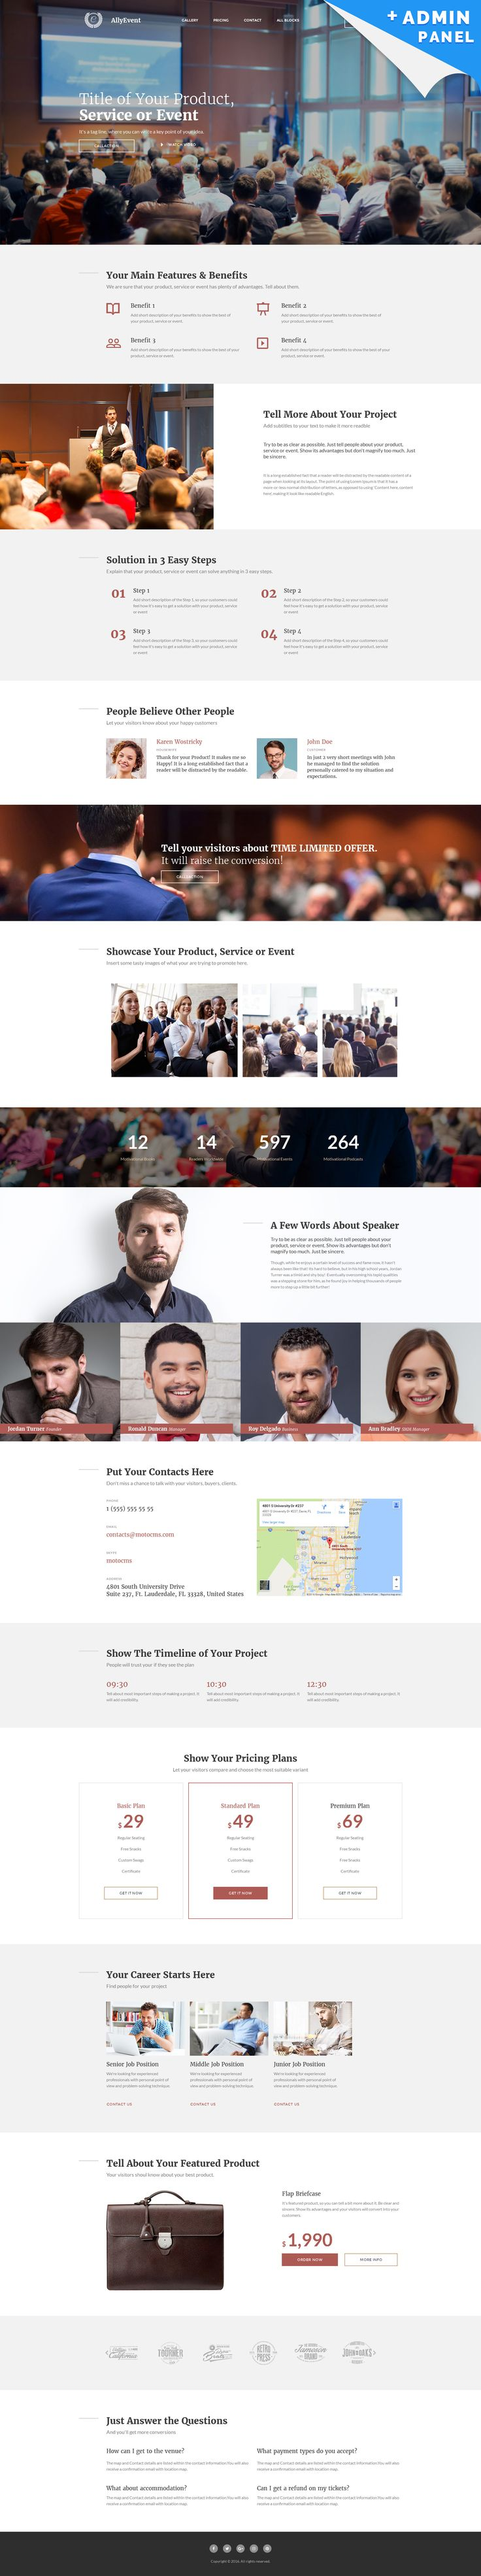 Business Responsive Landing Page Template #59198